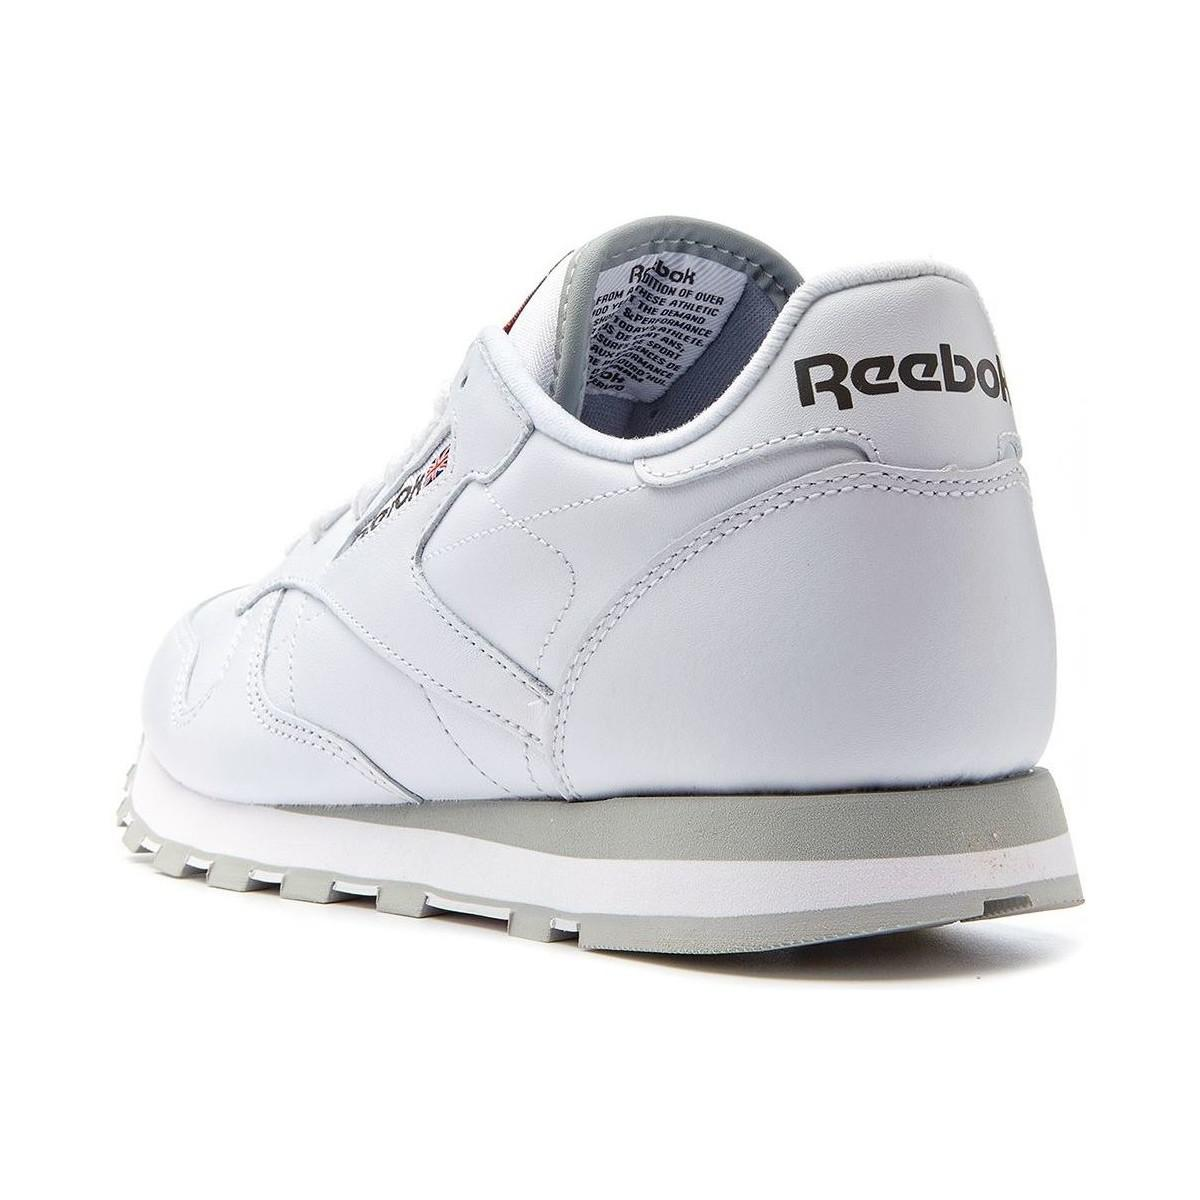 60468a2ccef Reebok Classic Leather Retro Trainers In White 2214 Men s Shoes ...